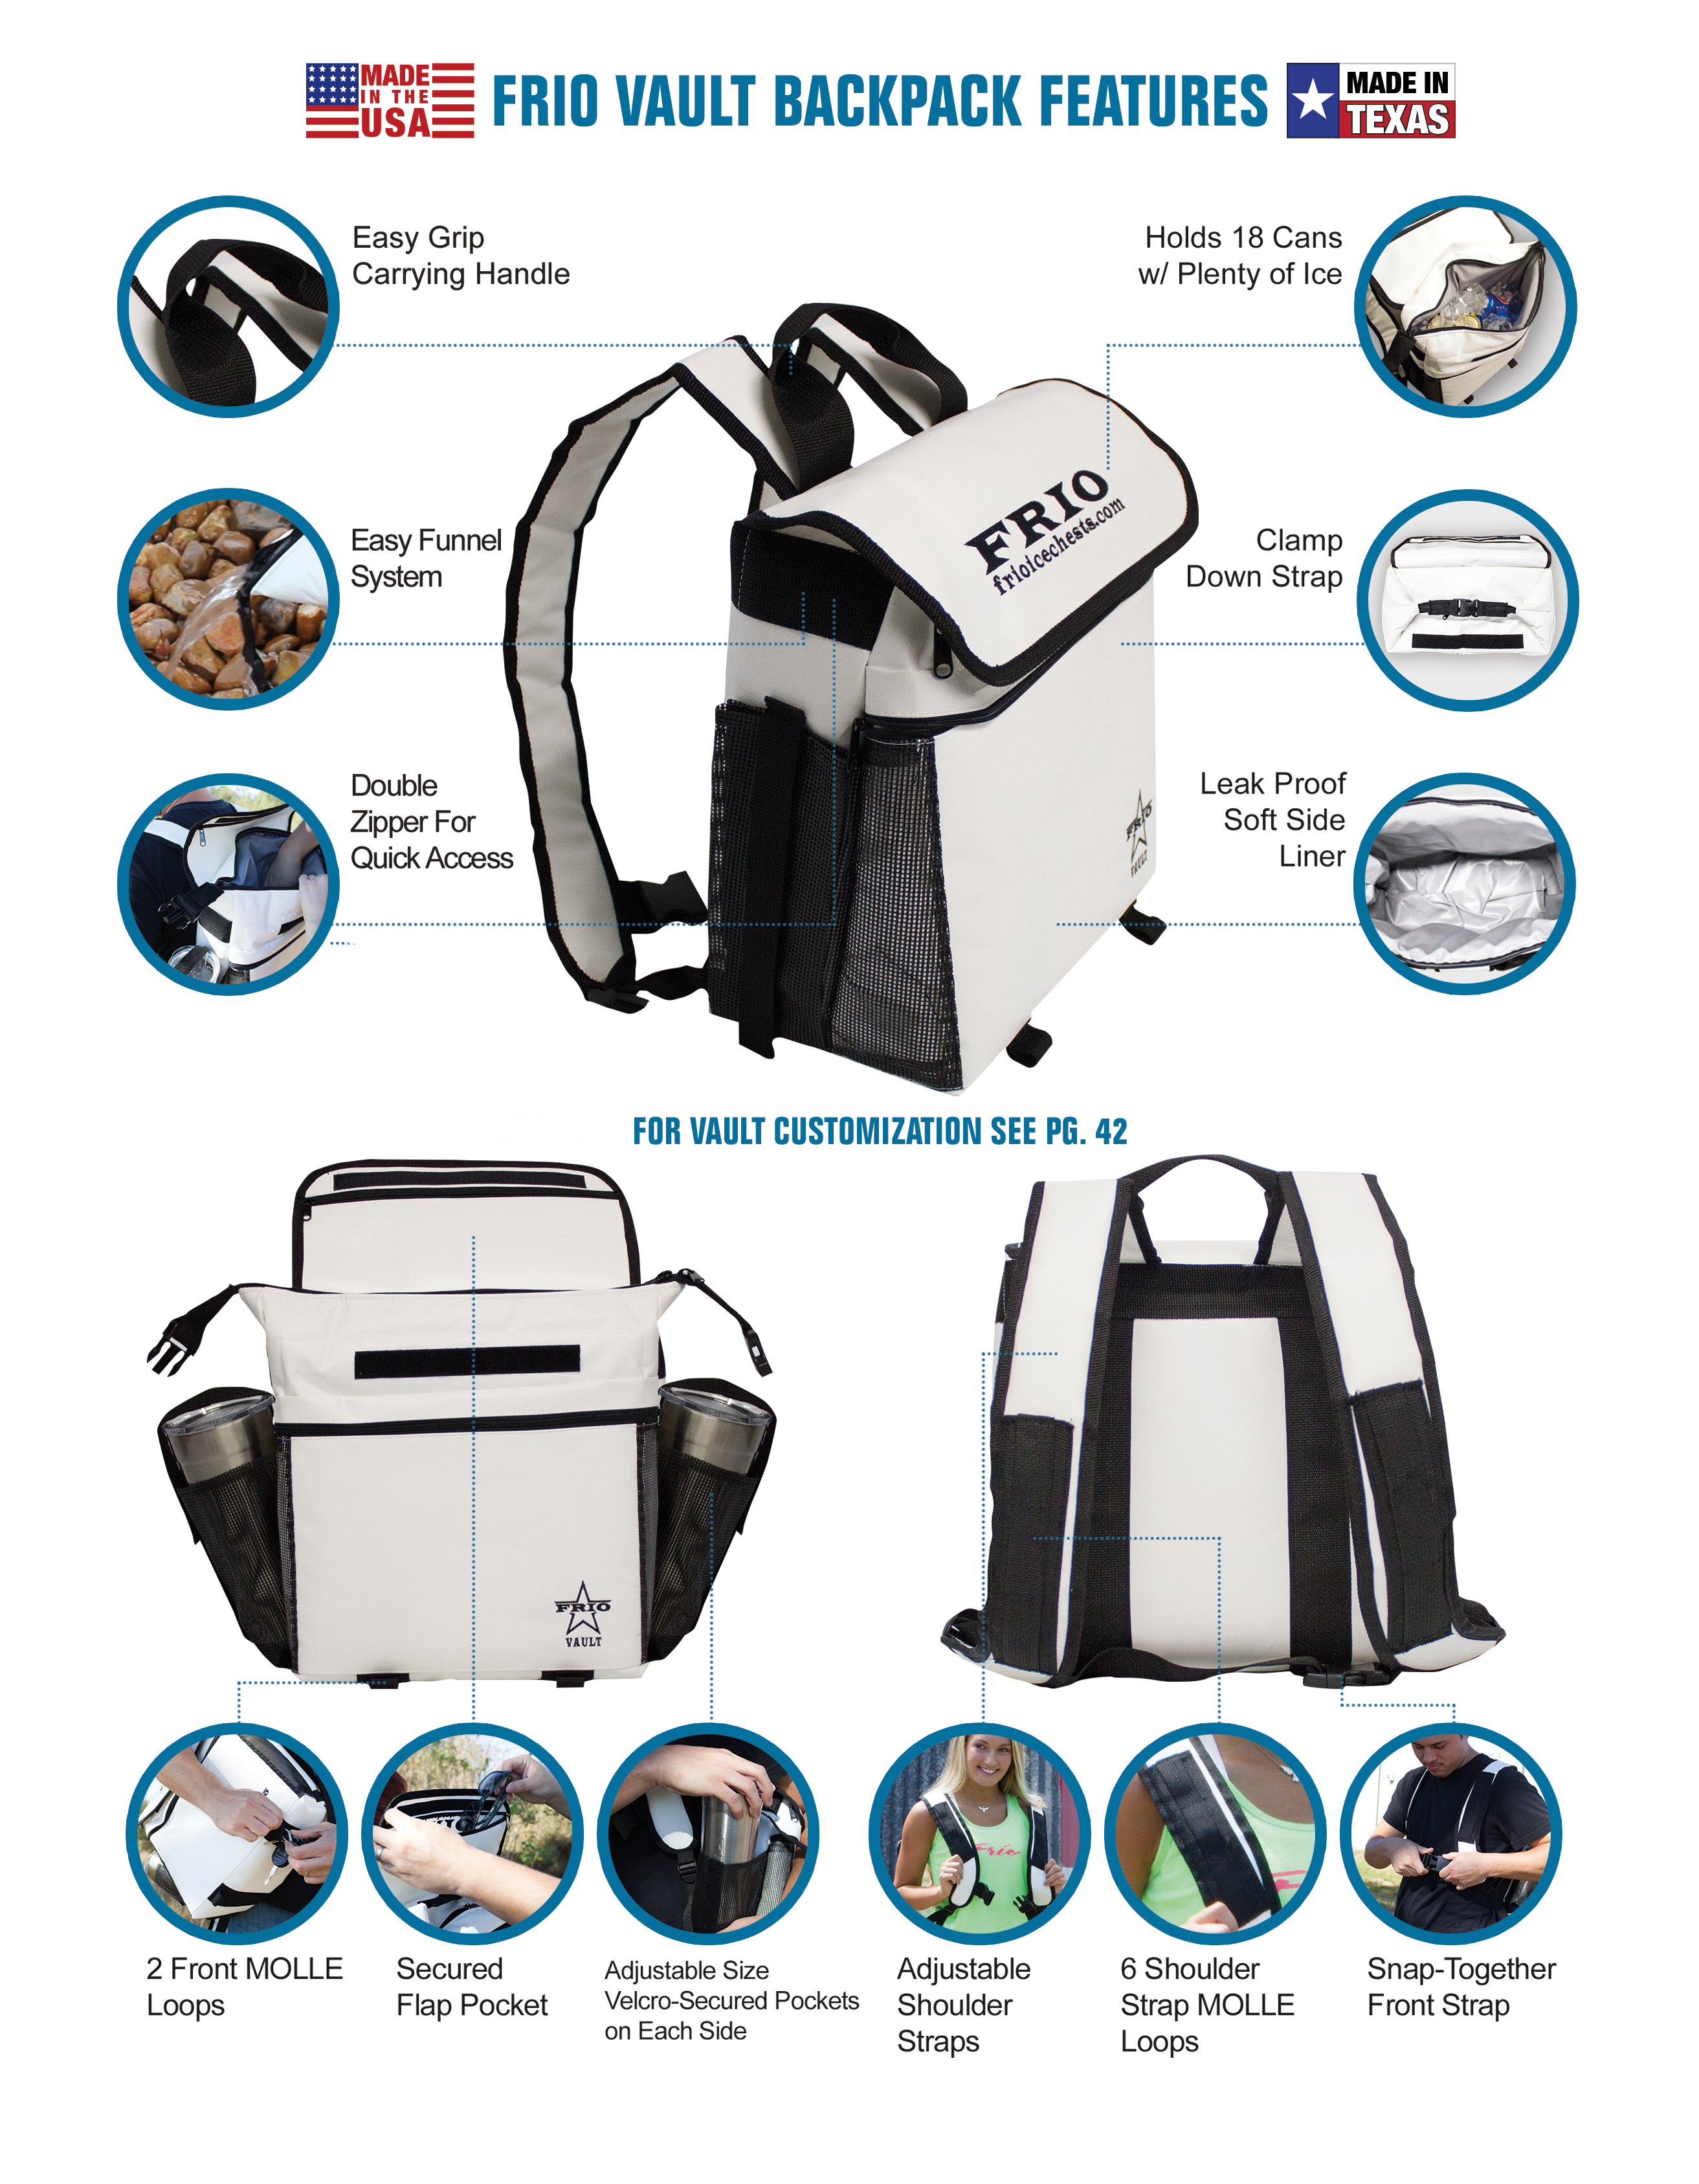 Frio Vault Backpack Features.png